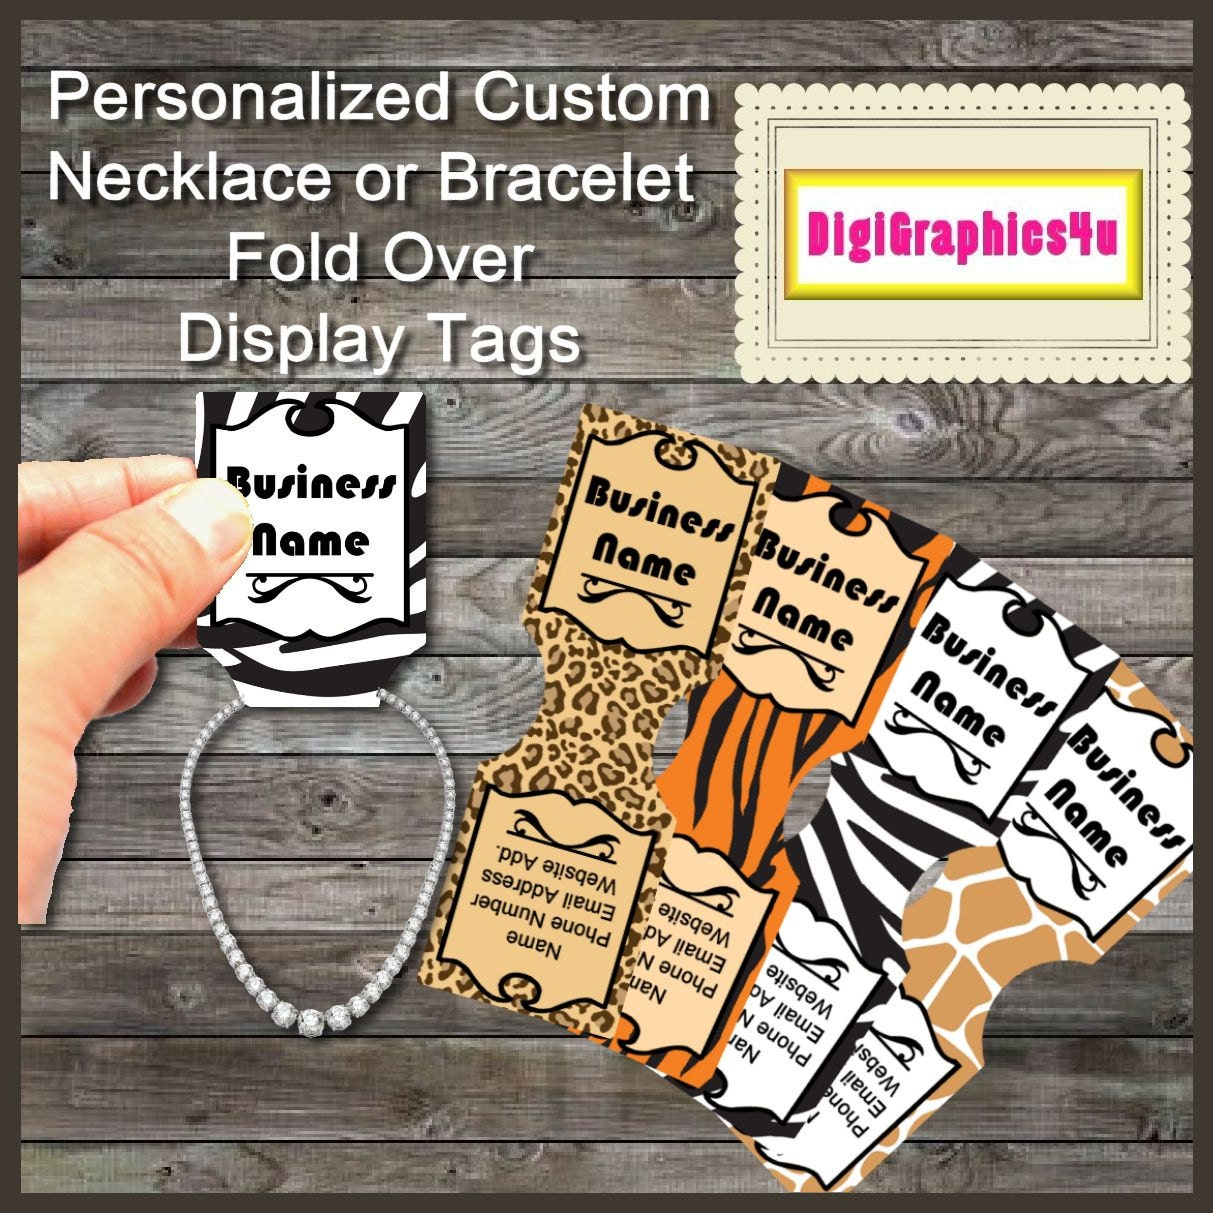 Personalized Necklace Or Bracelet Jewelry Fold Over